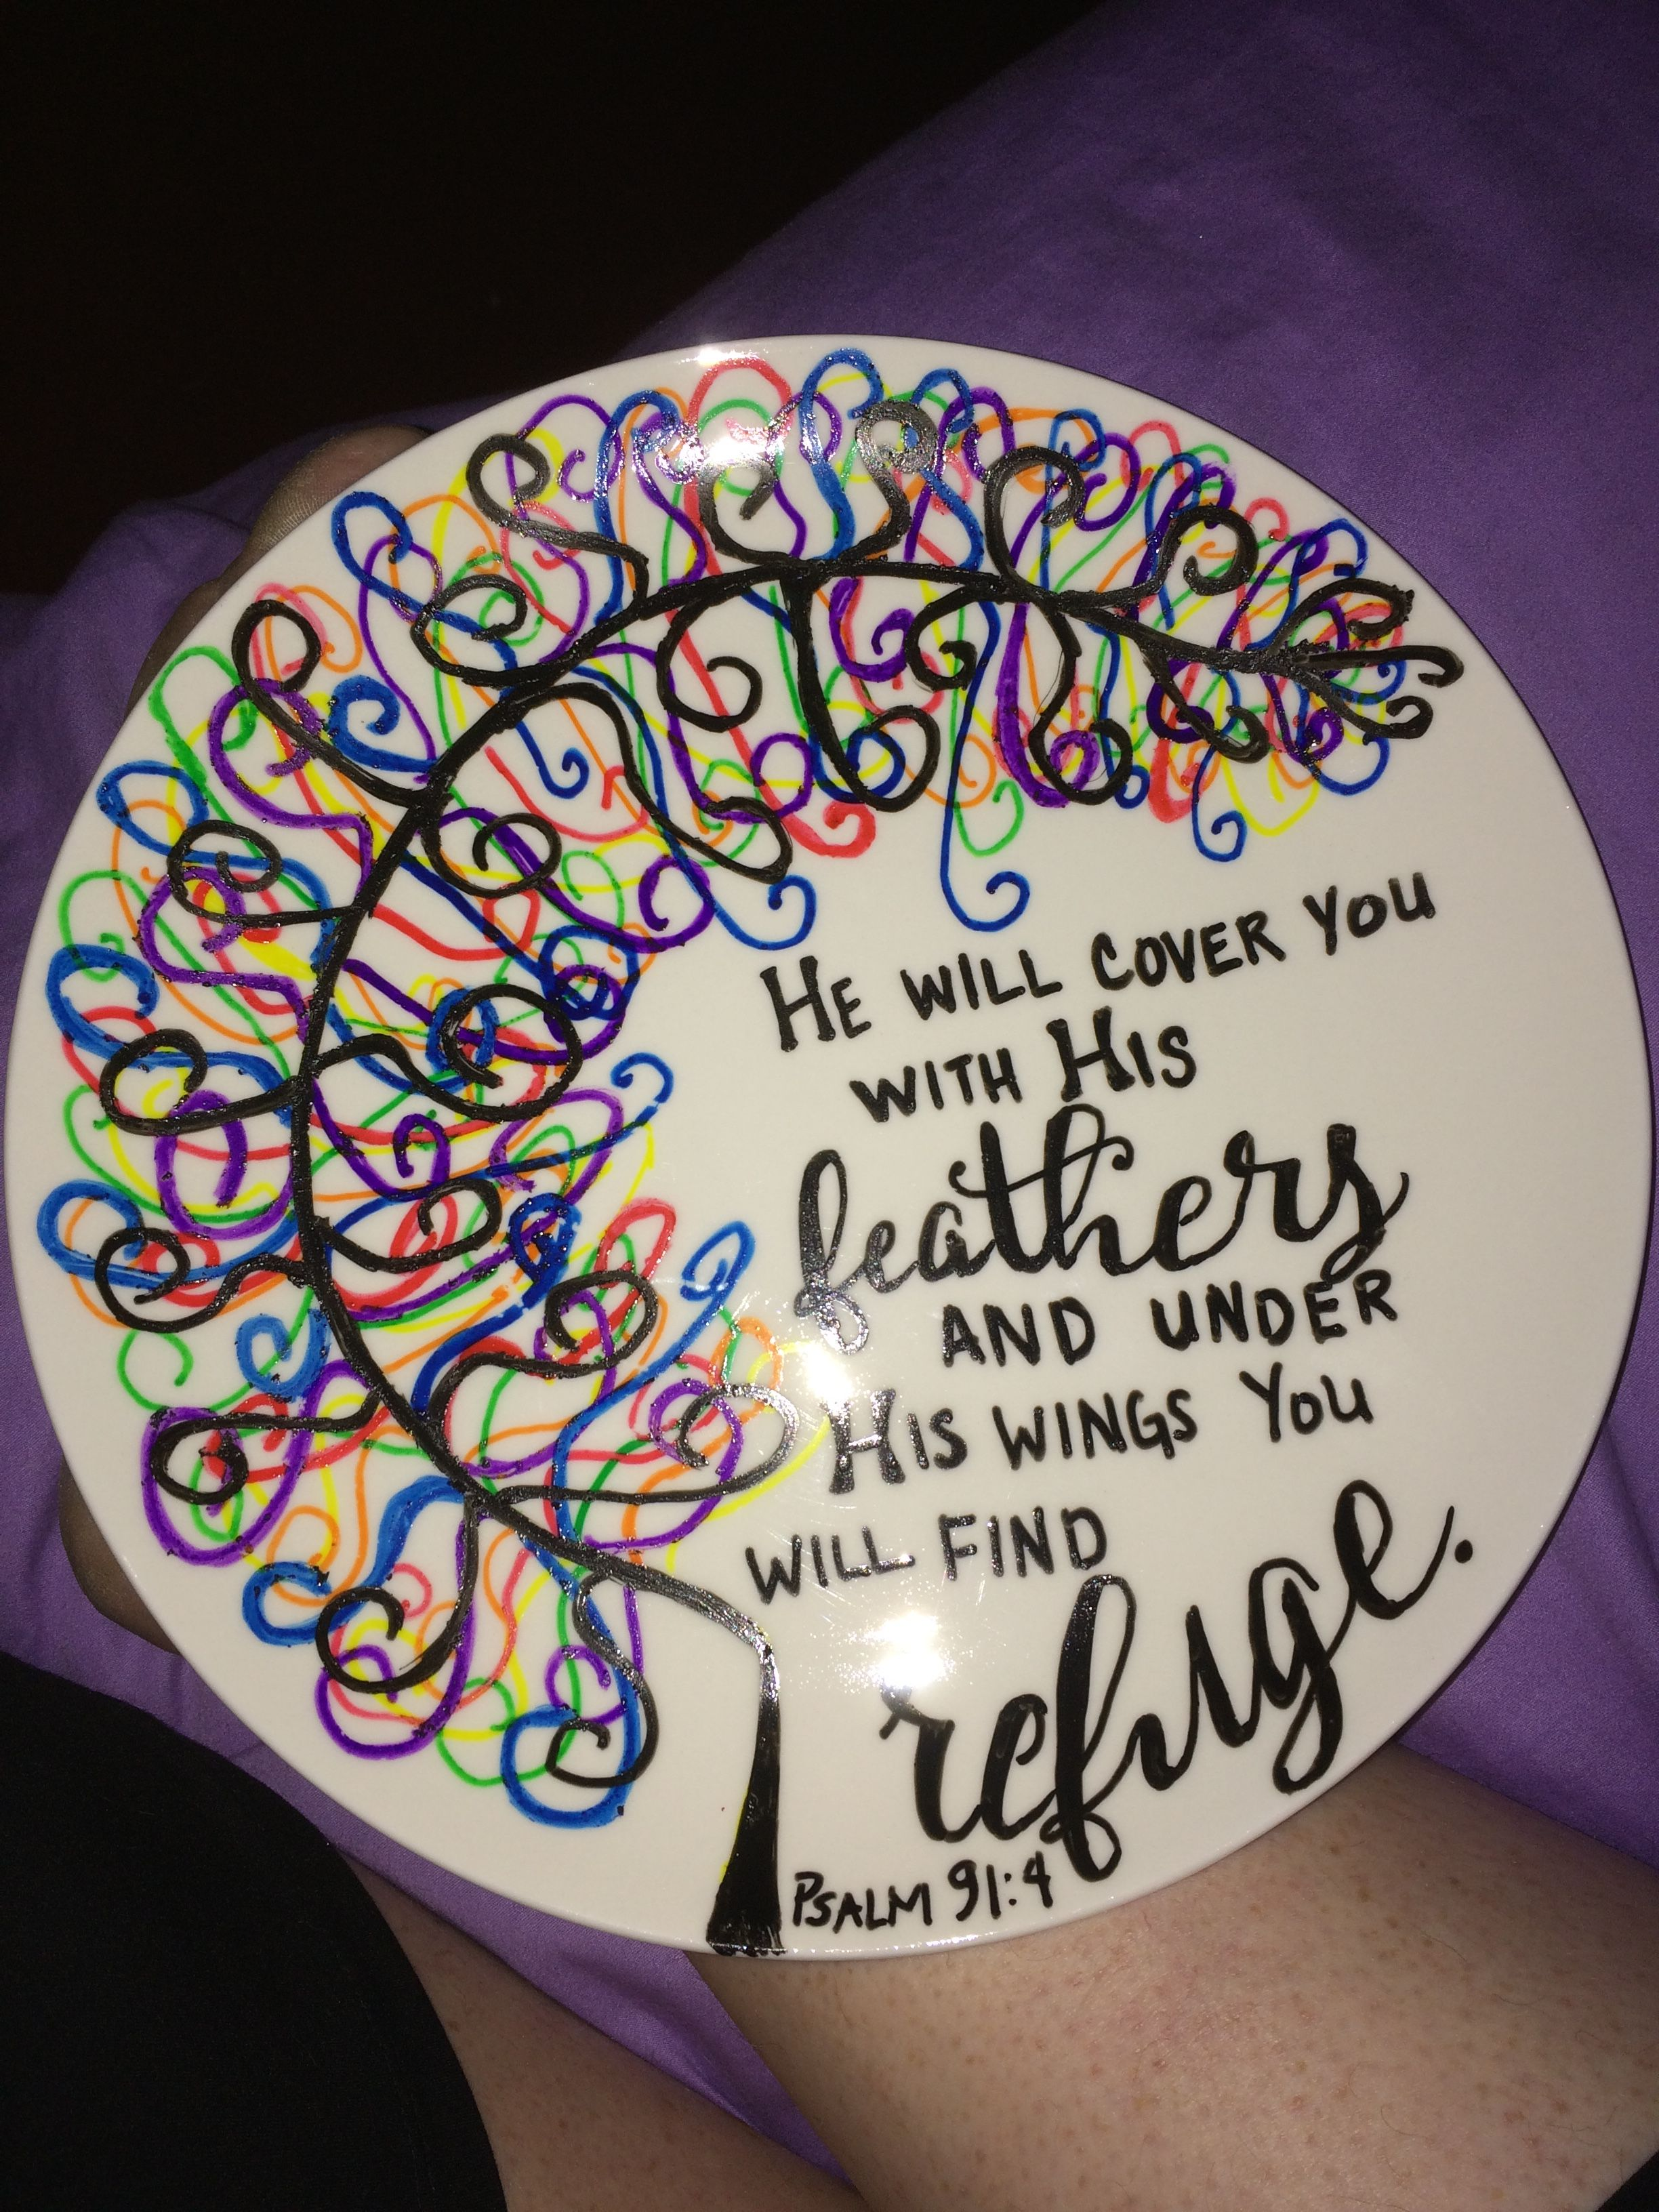 DIY Plate using DecoArt Glass Paint Markers found at Hobby